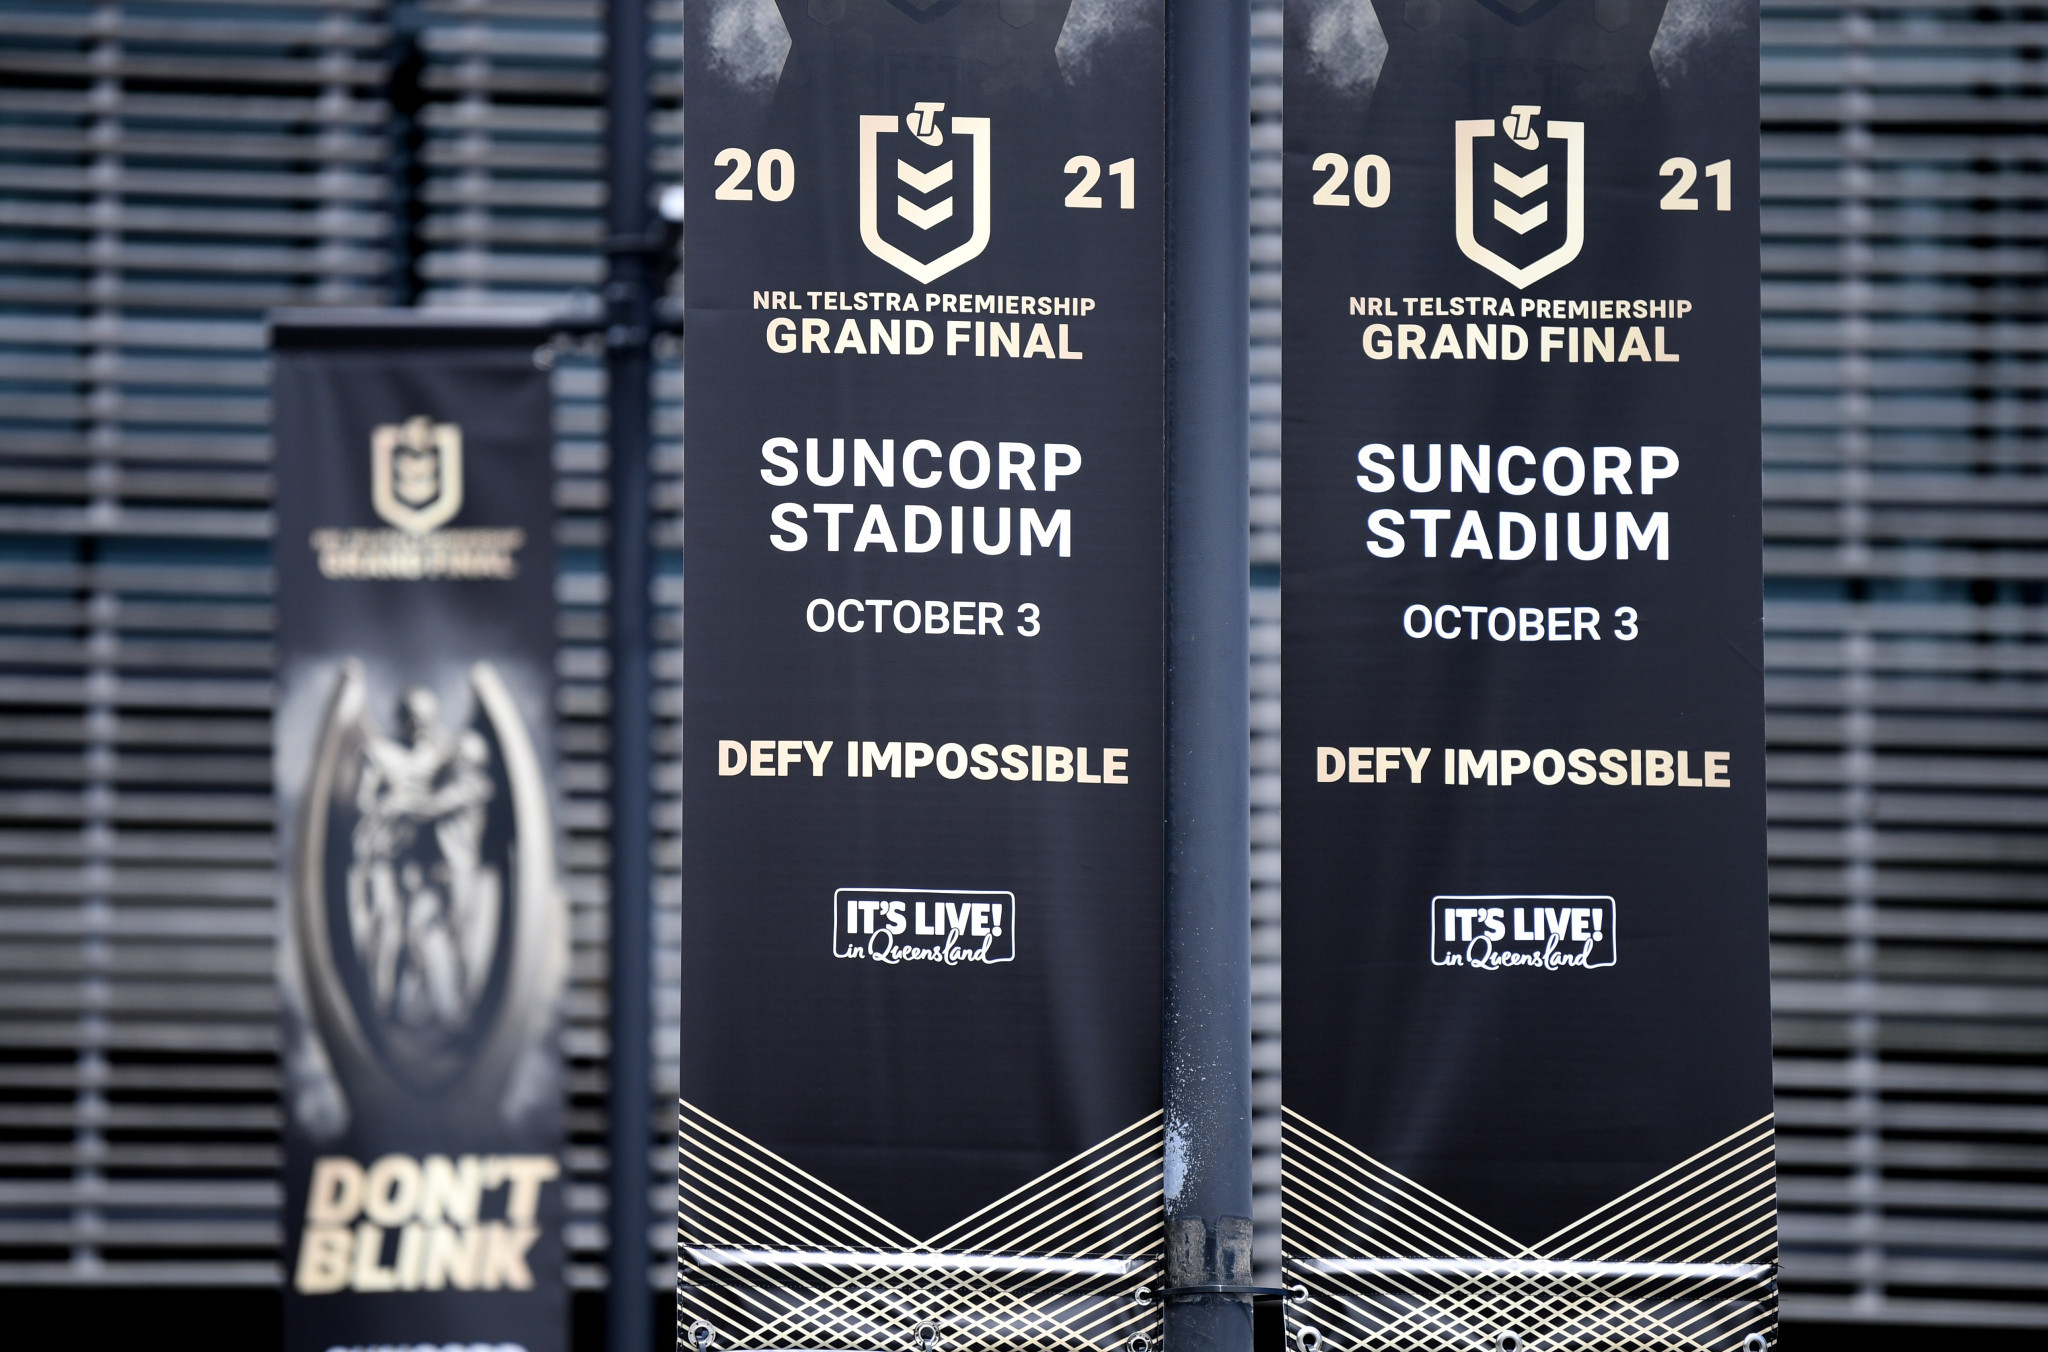 Sunday's NRL Grand Final crowd reduced by 13,000 and could still be moved from Brisbane